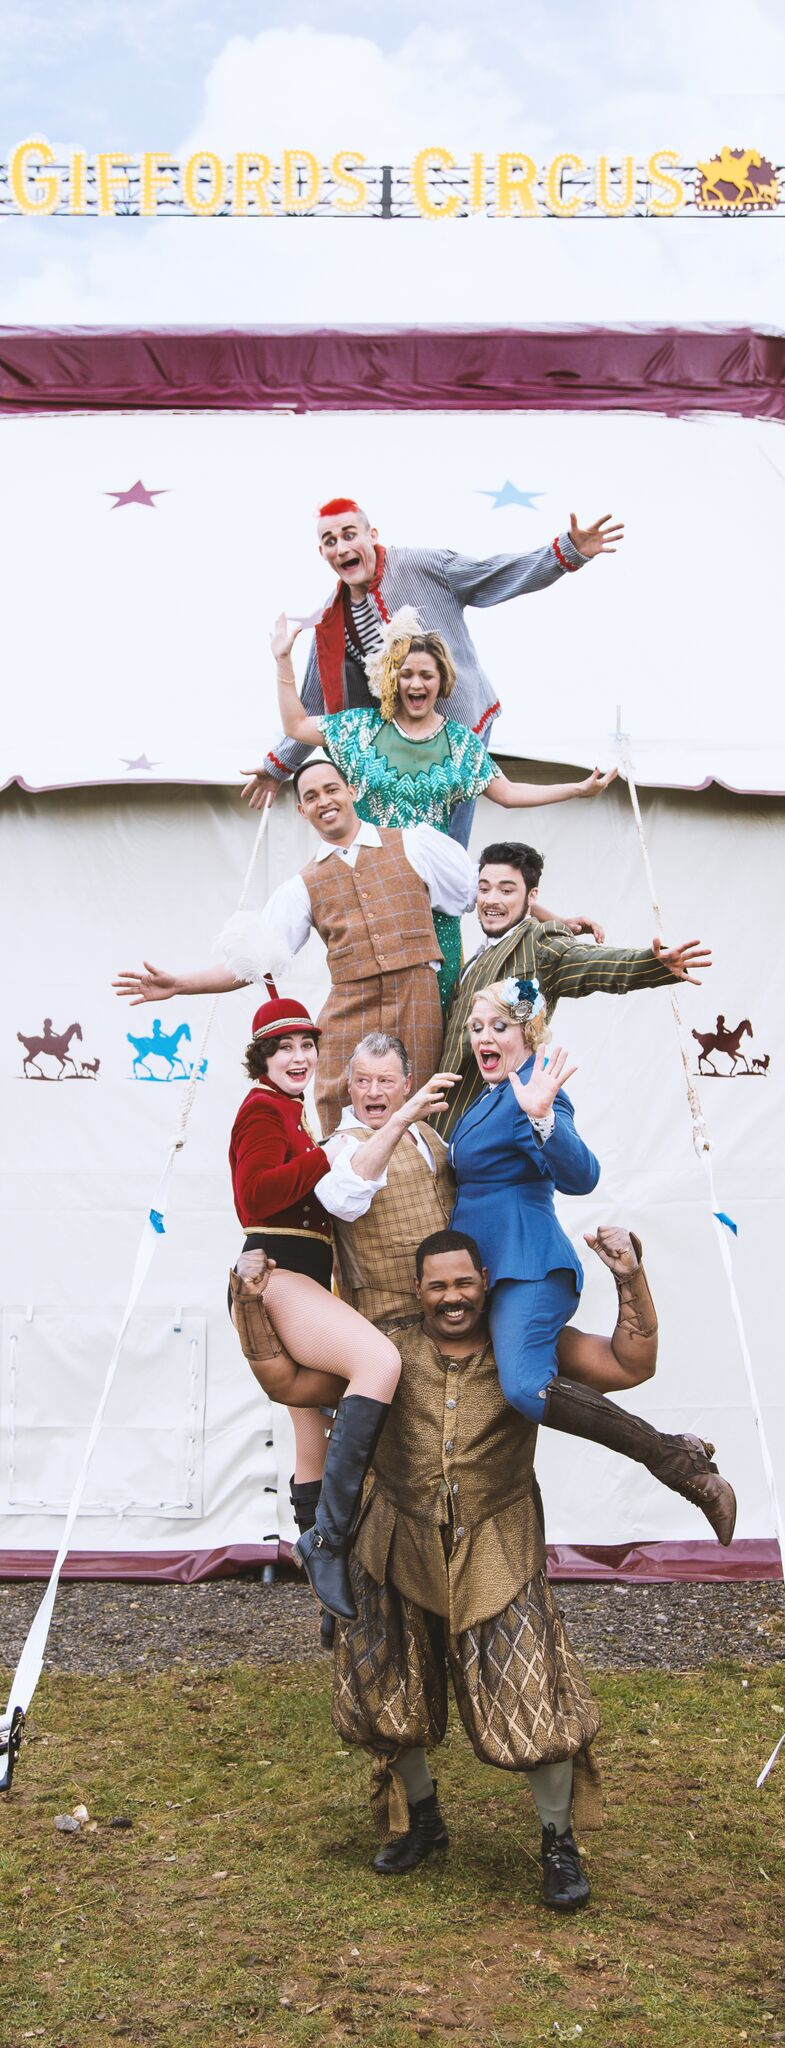 It all stacks up: Some of the Giffords Circus troupe. Picture by Gem Hall.